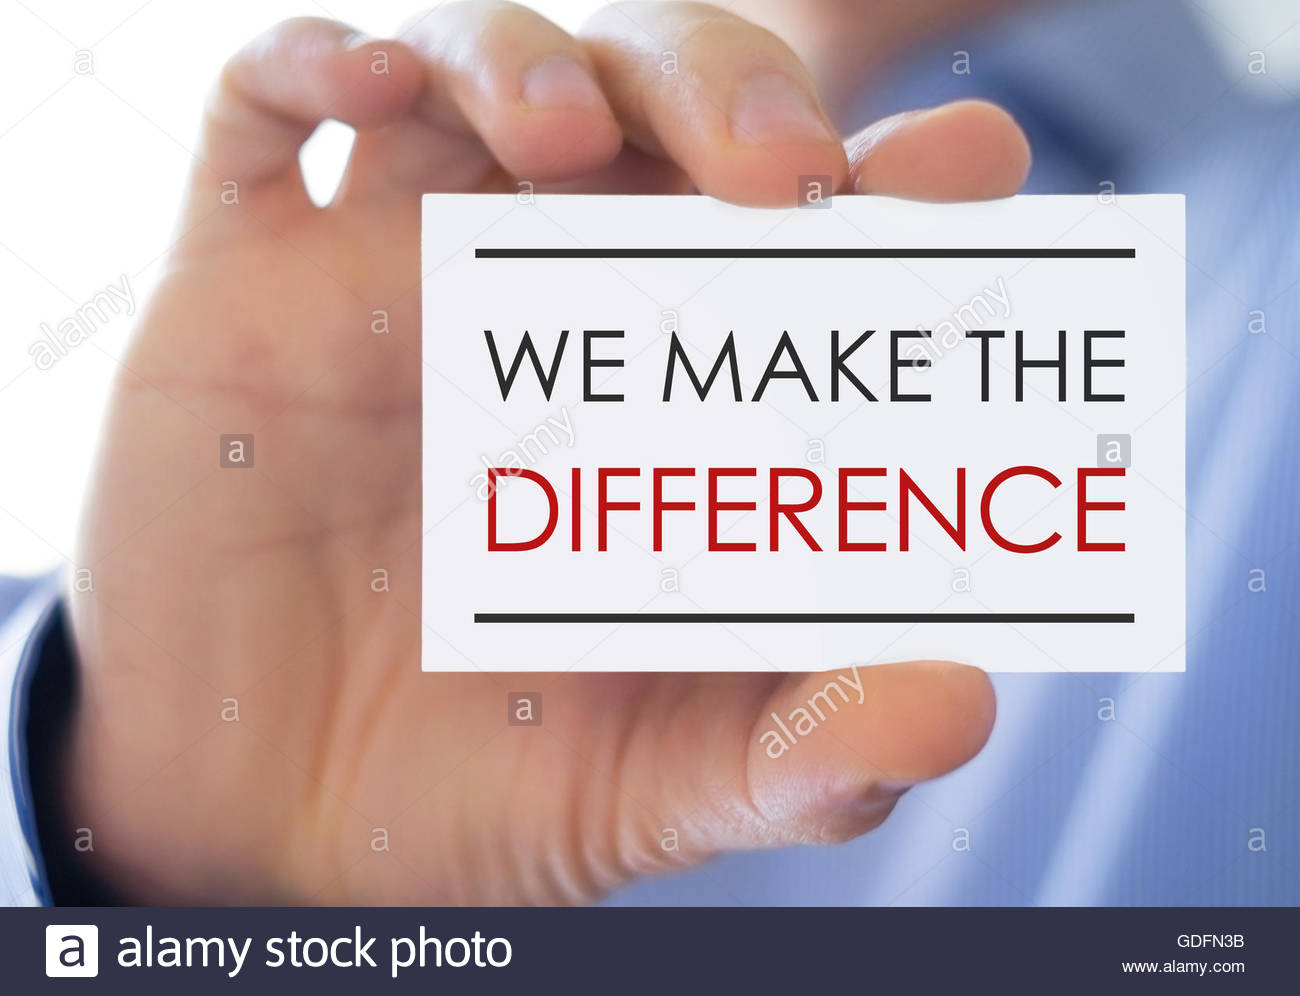 We make the difference - business card concept - Stock Image